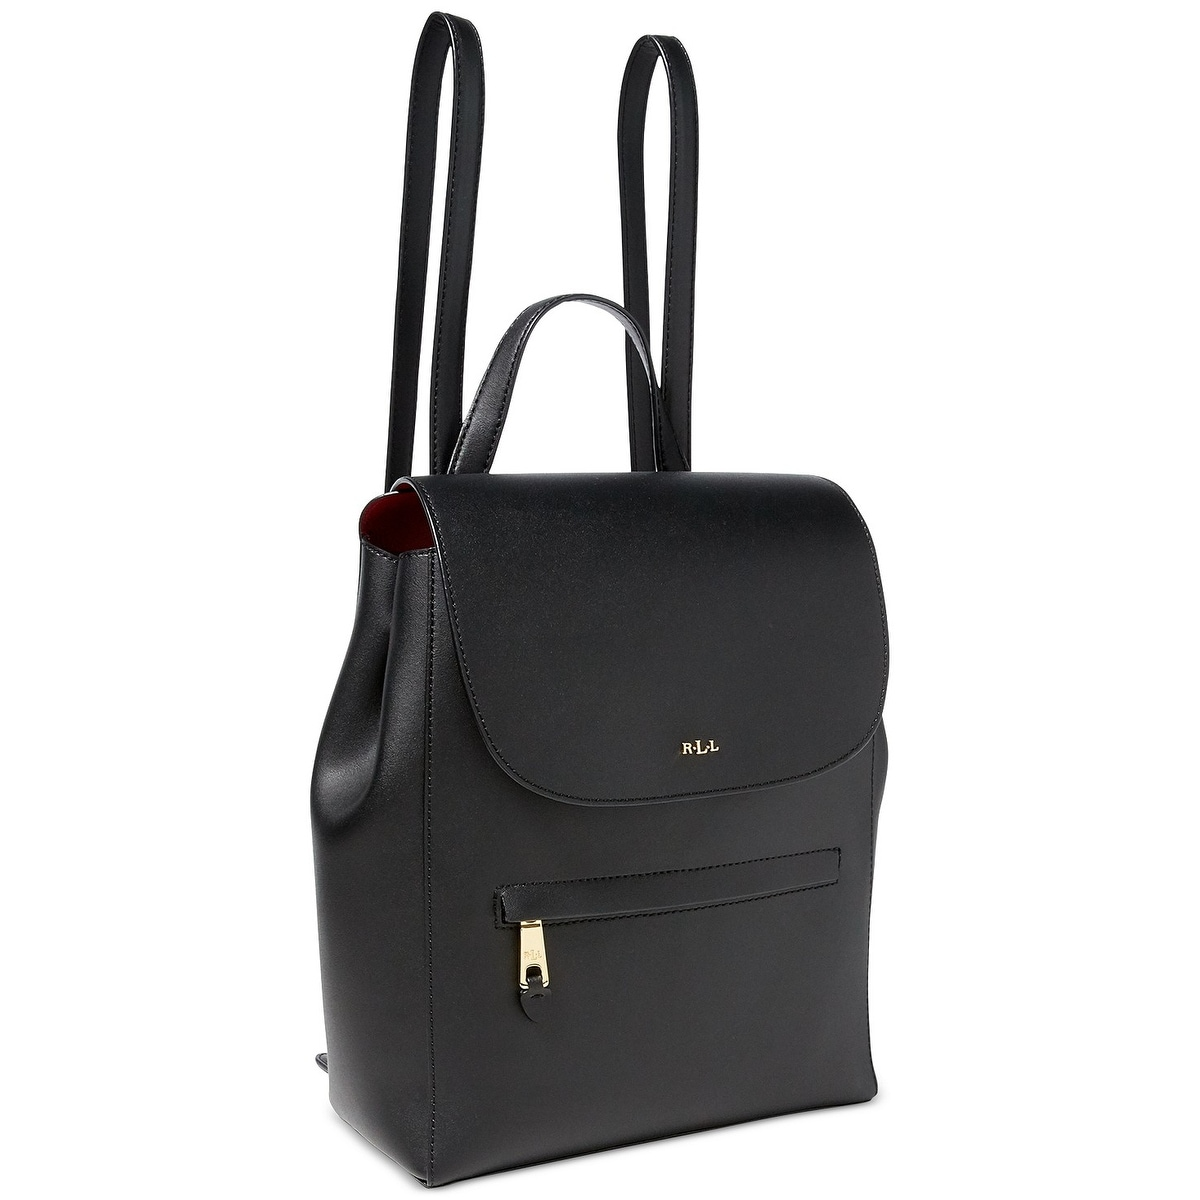 57bf7472bd1fa Shop Lauren Ralph Lauren Dryden Ellen Backpack - Black - Free Shipping  Today - Overstock - 21160634